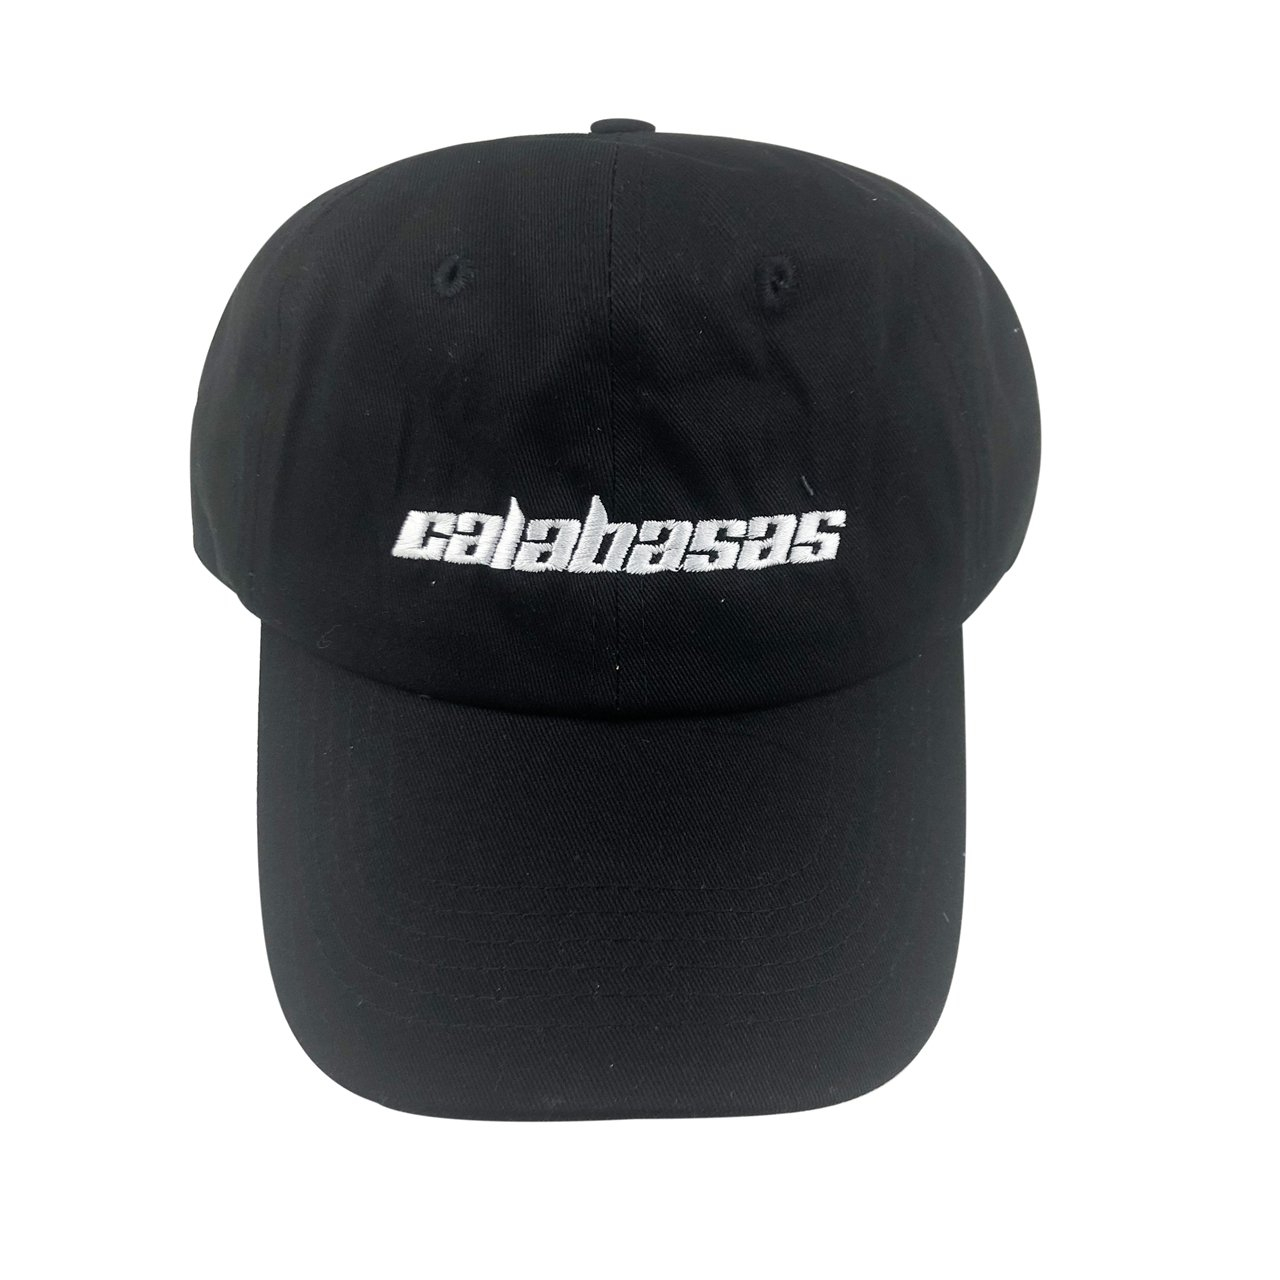 qifang liu Calabasas Dad Hat Men's Baseball Cap Embroidered Adjustable Strapback fdgodeie1